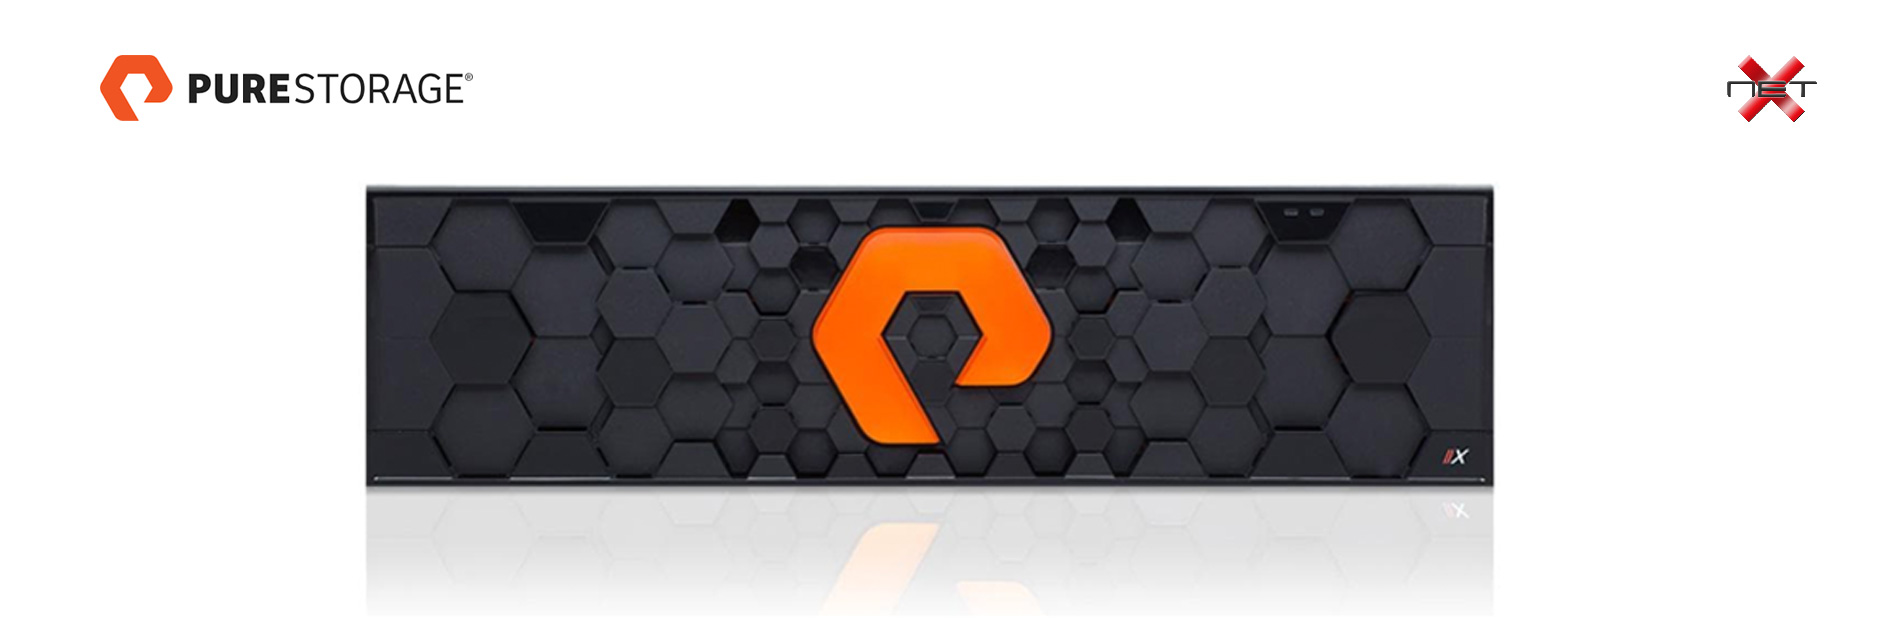 Purestorage - Evergreen Storage with NetX